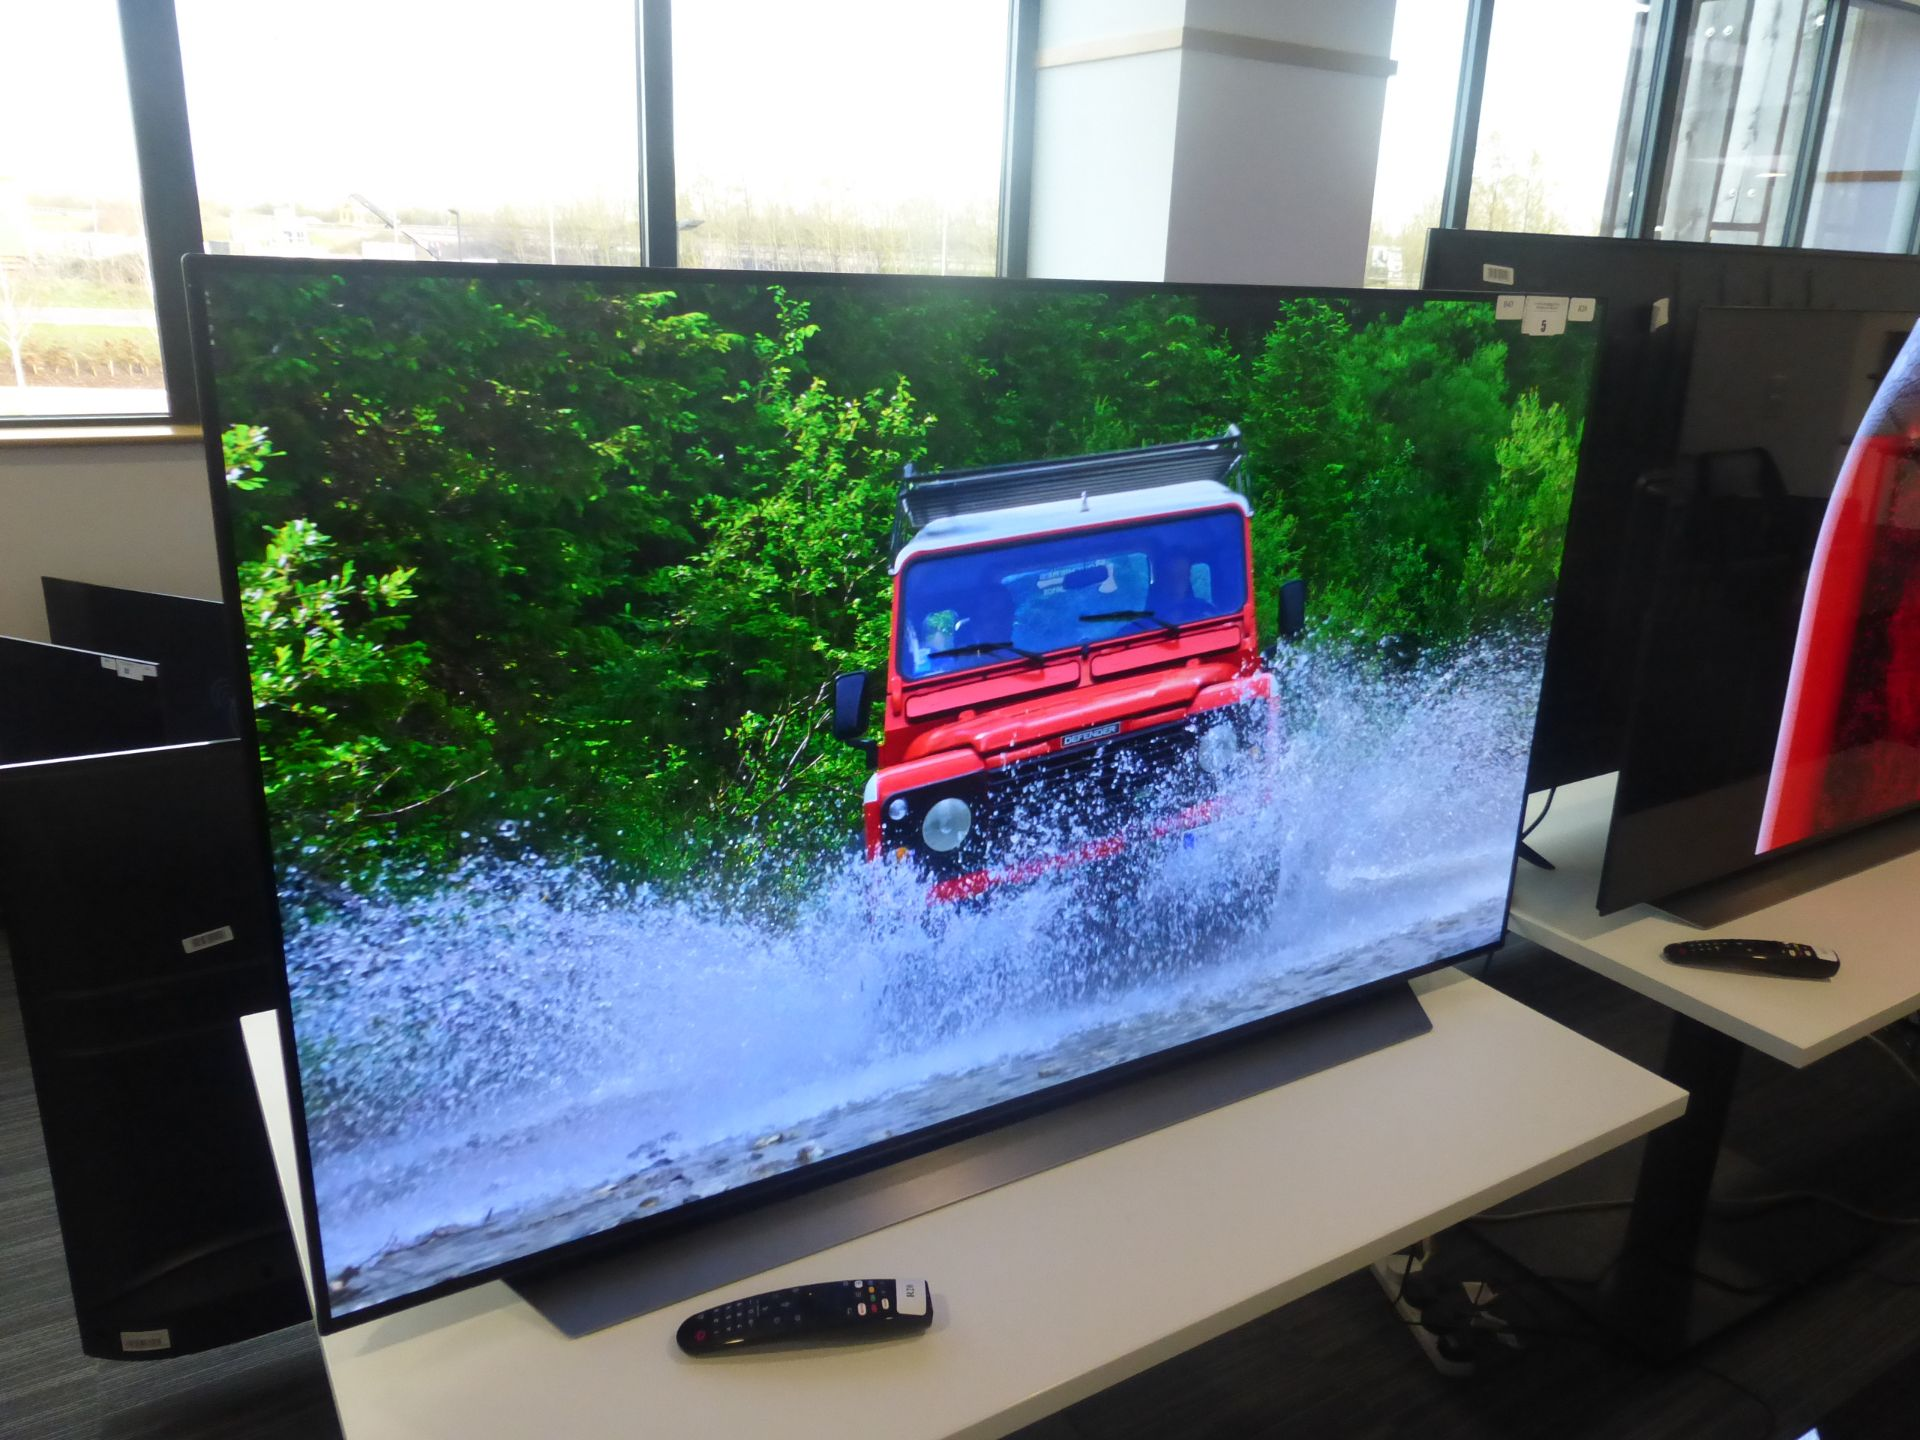 LG 55'' 4K OLED TV Model: OLED55CX5LB, includes remote (R20) and box (B43) Screen has no visible